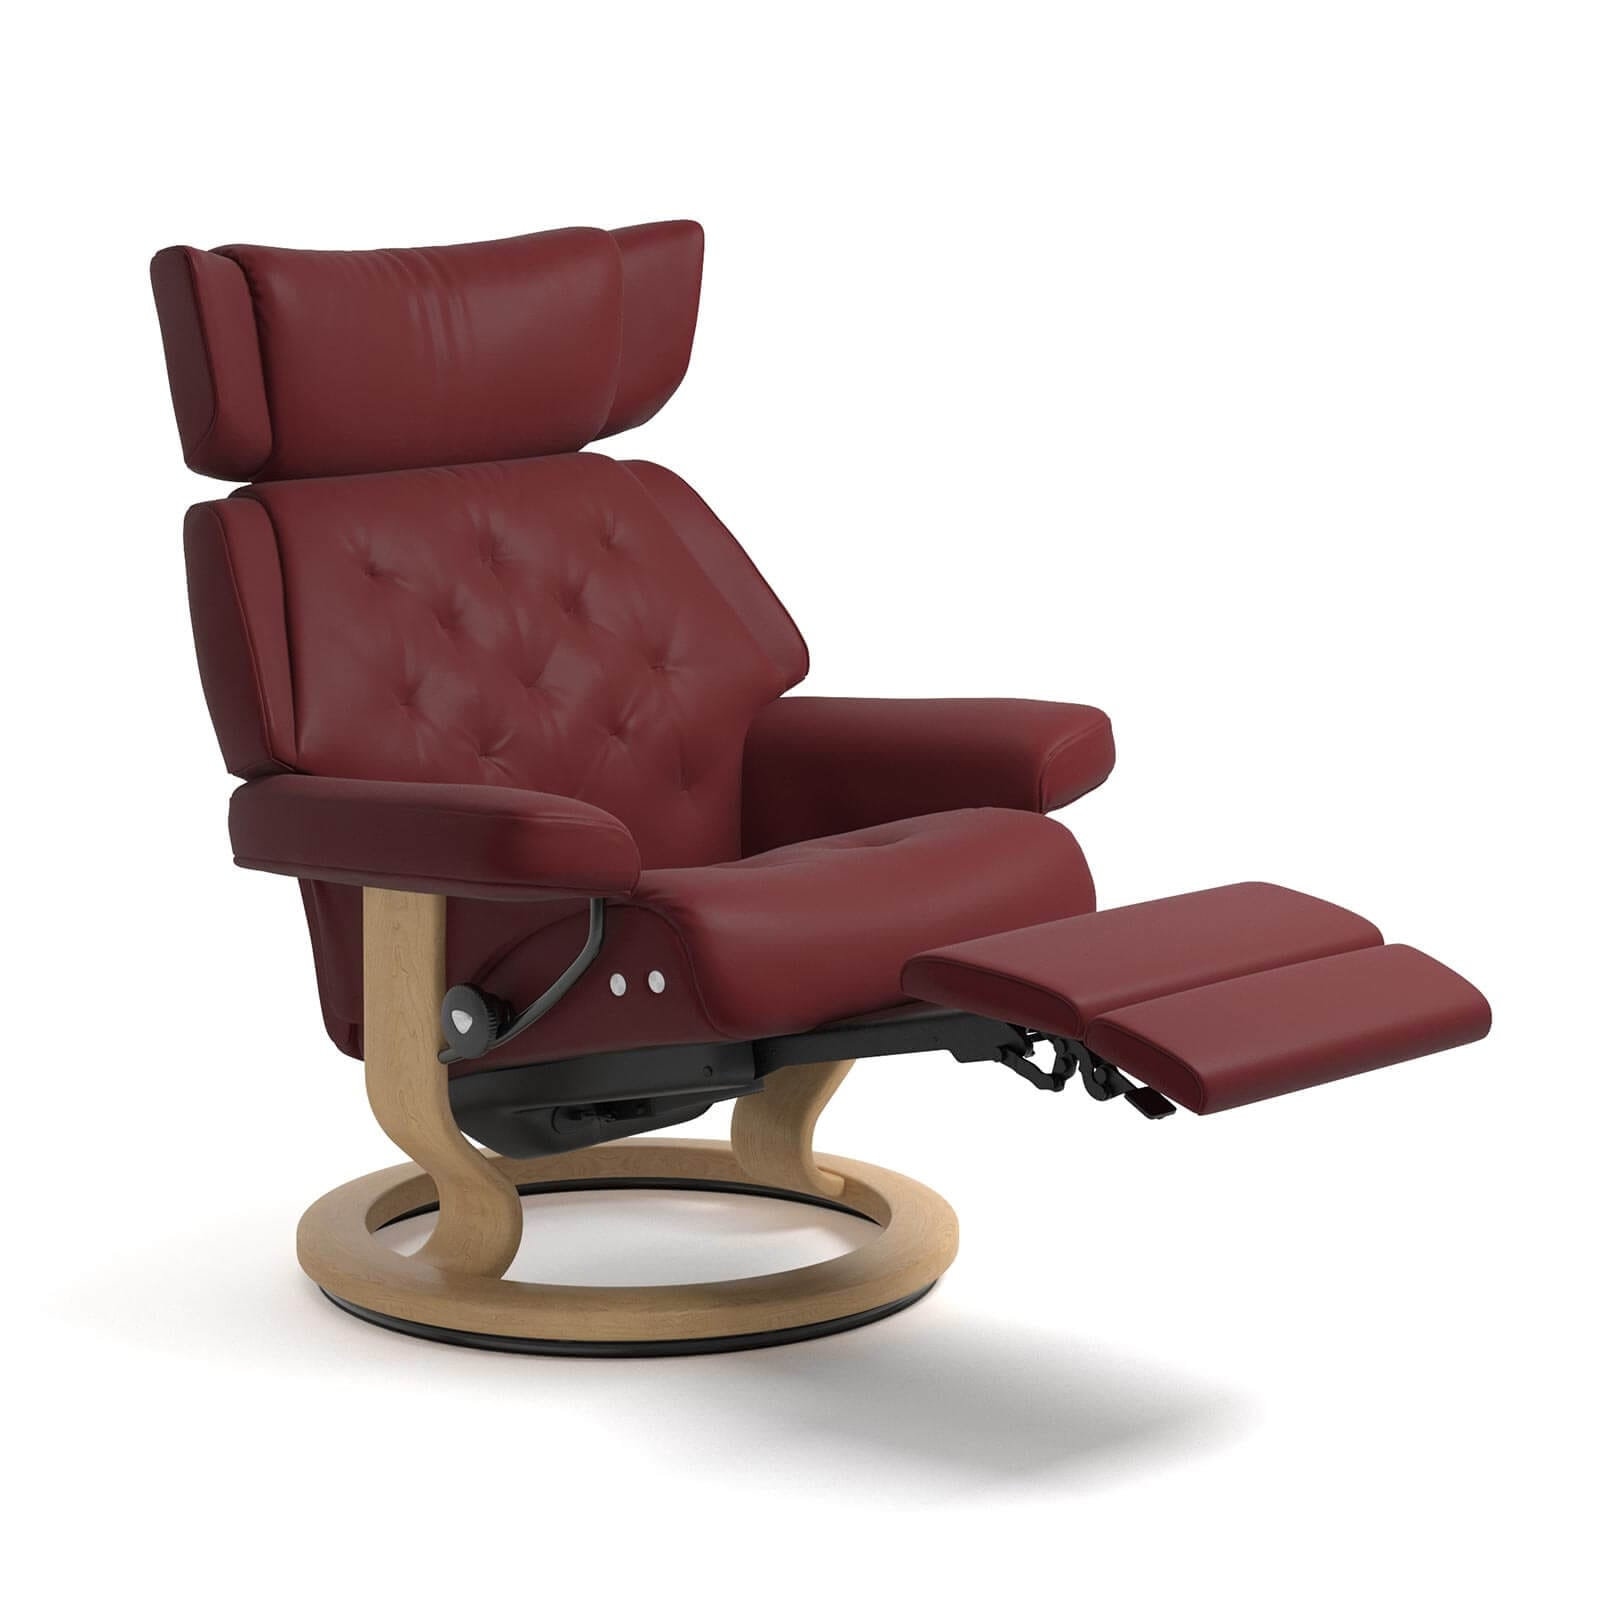 Stressless Sessel Skyline Stressless Sessel Skyline Legcomfort Batick Burgundy